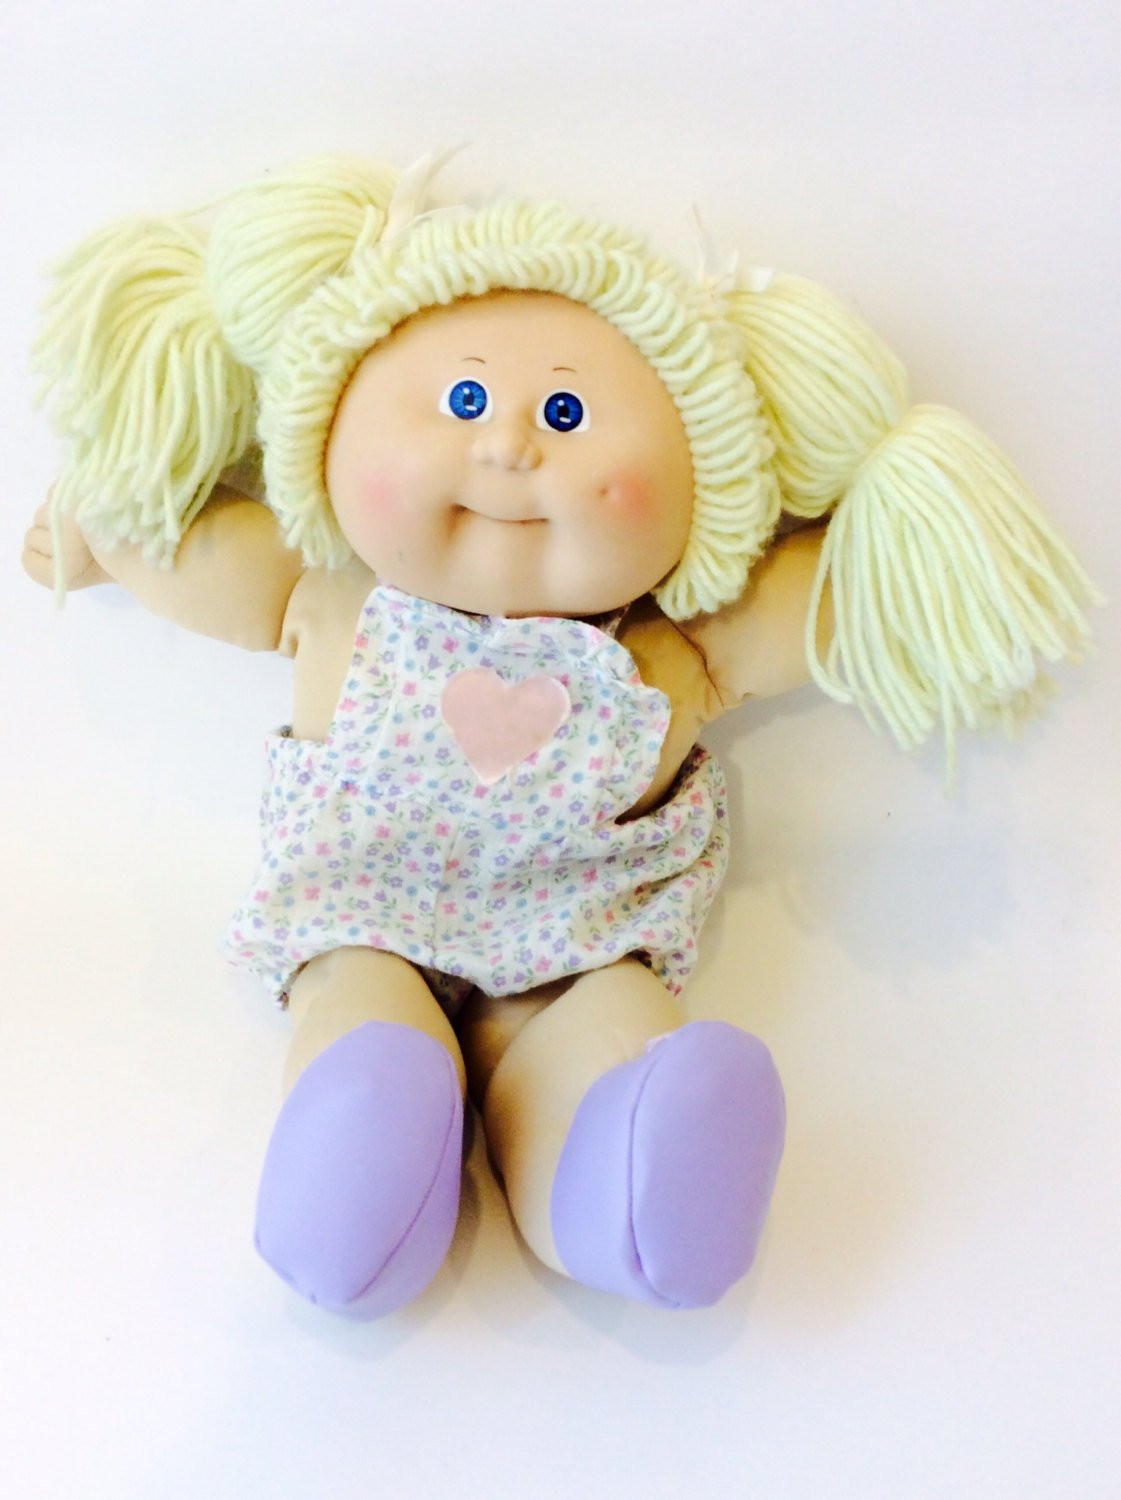 Luxury Cabbage Patch Kid Vintage 1983 Cpk Doll Coleco Blonde Hair Baby Cabbage Patch Doll Of Great 47 Photos Baby Cabbage Patch Doll